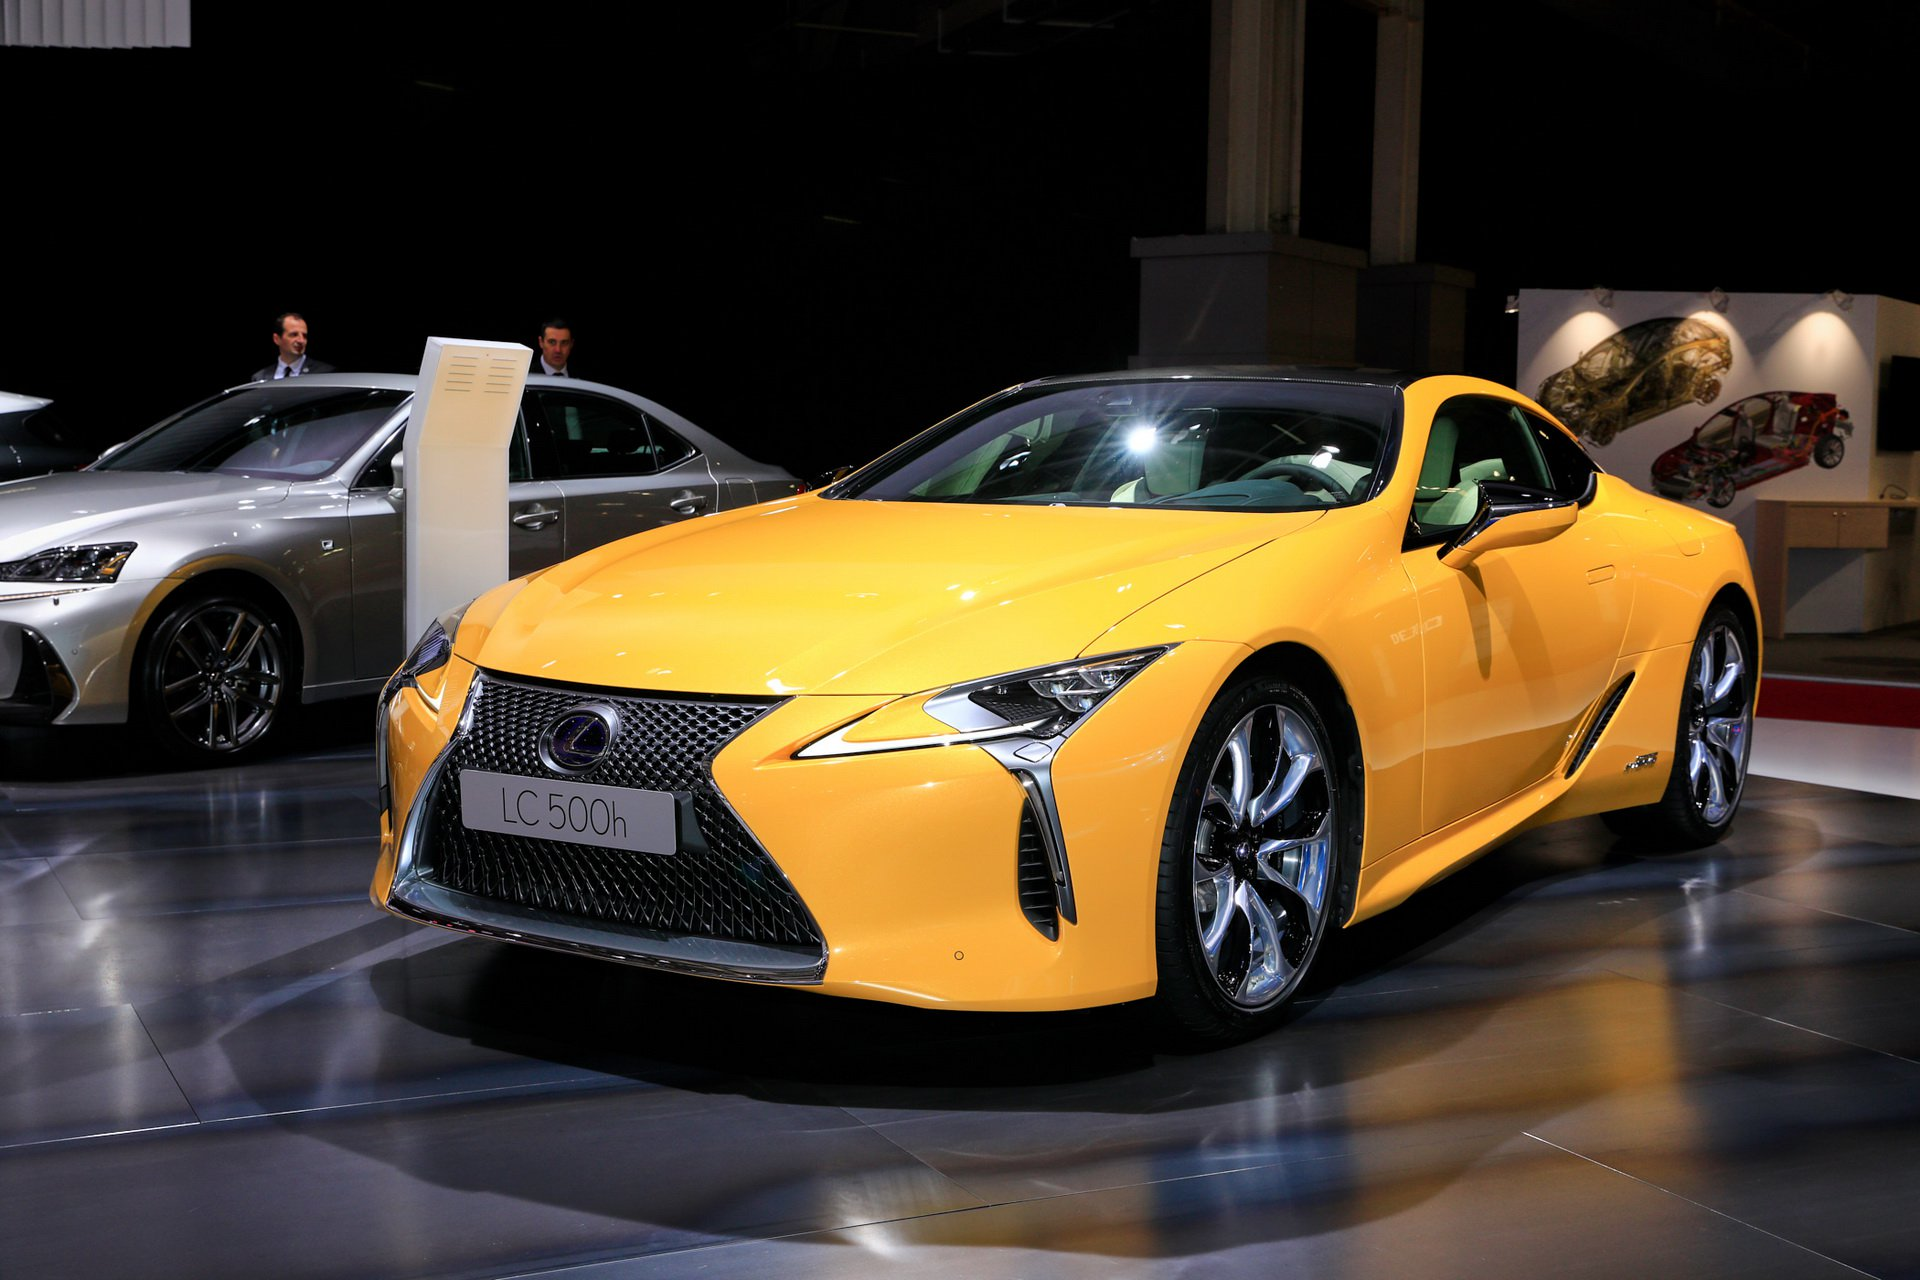 2019-lexus-lc-limited-edition-ra-mat-paris-1.jpg